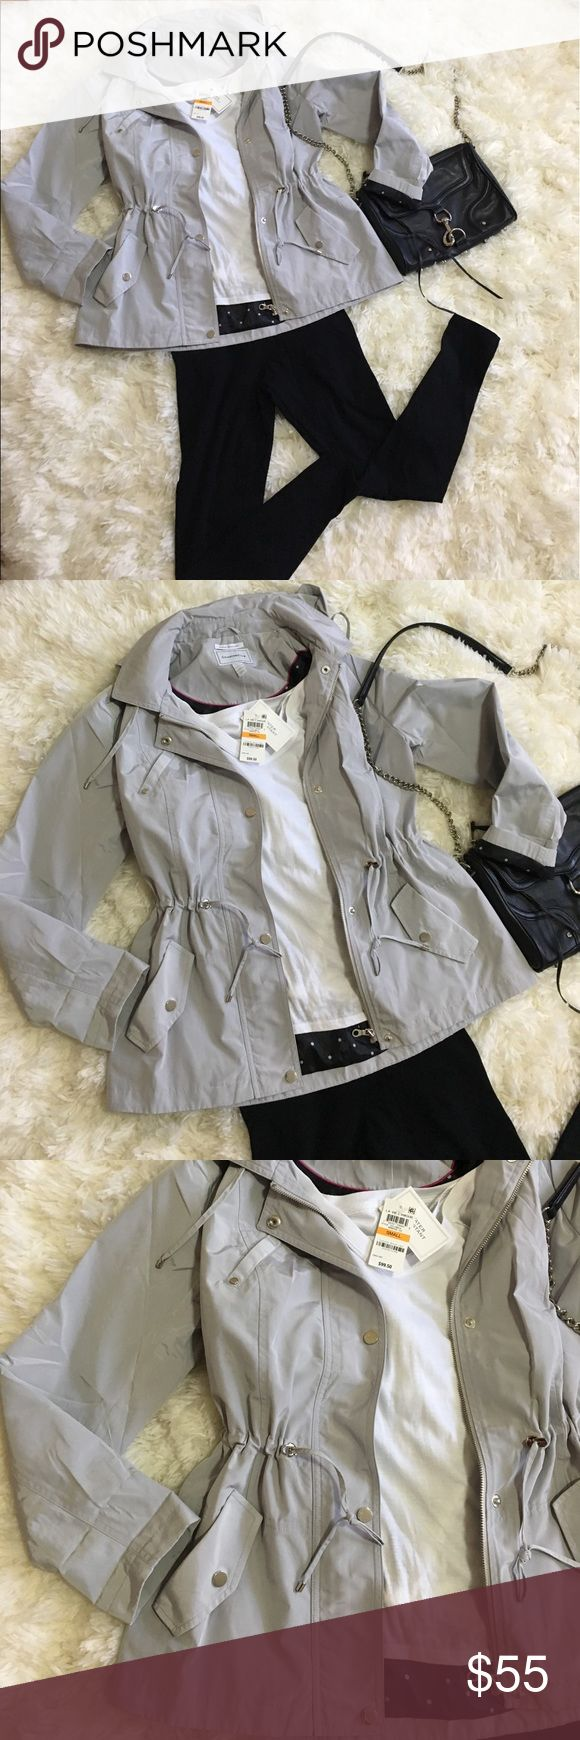 NWT Charter Club light gray jacket Versatile and classic zip up jacket by Charter Club in light gray grey (silver buttons) size Small. Water resistant, removable hoodie, cinch at the waist, hand pockets and beautiful black and white polka dot interior. No flaws. Smoke and pet free home. Charter Club Jackets & Coats